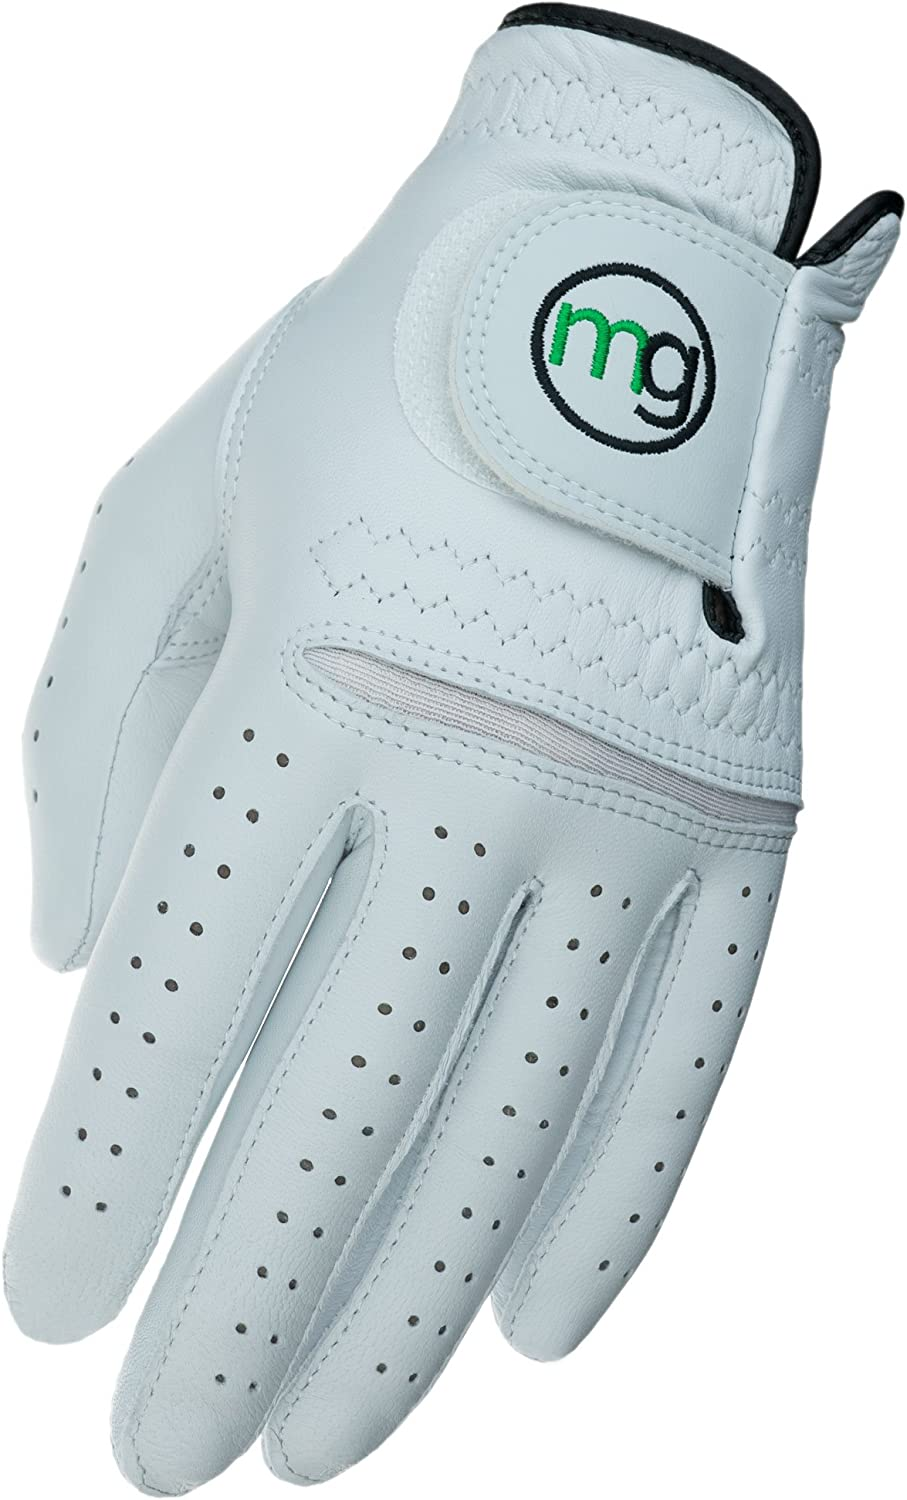 MG Golf Glove Mens DynaGrip Elite All-Cabretta Leather (Cadet Sizes)